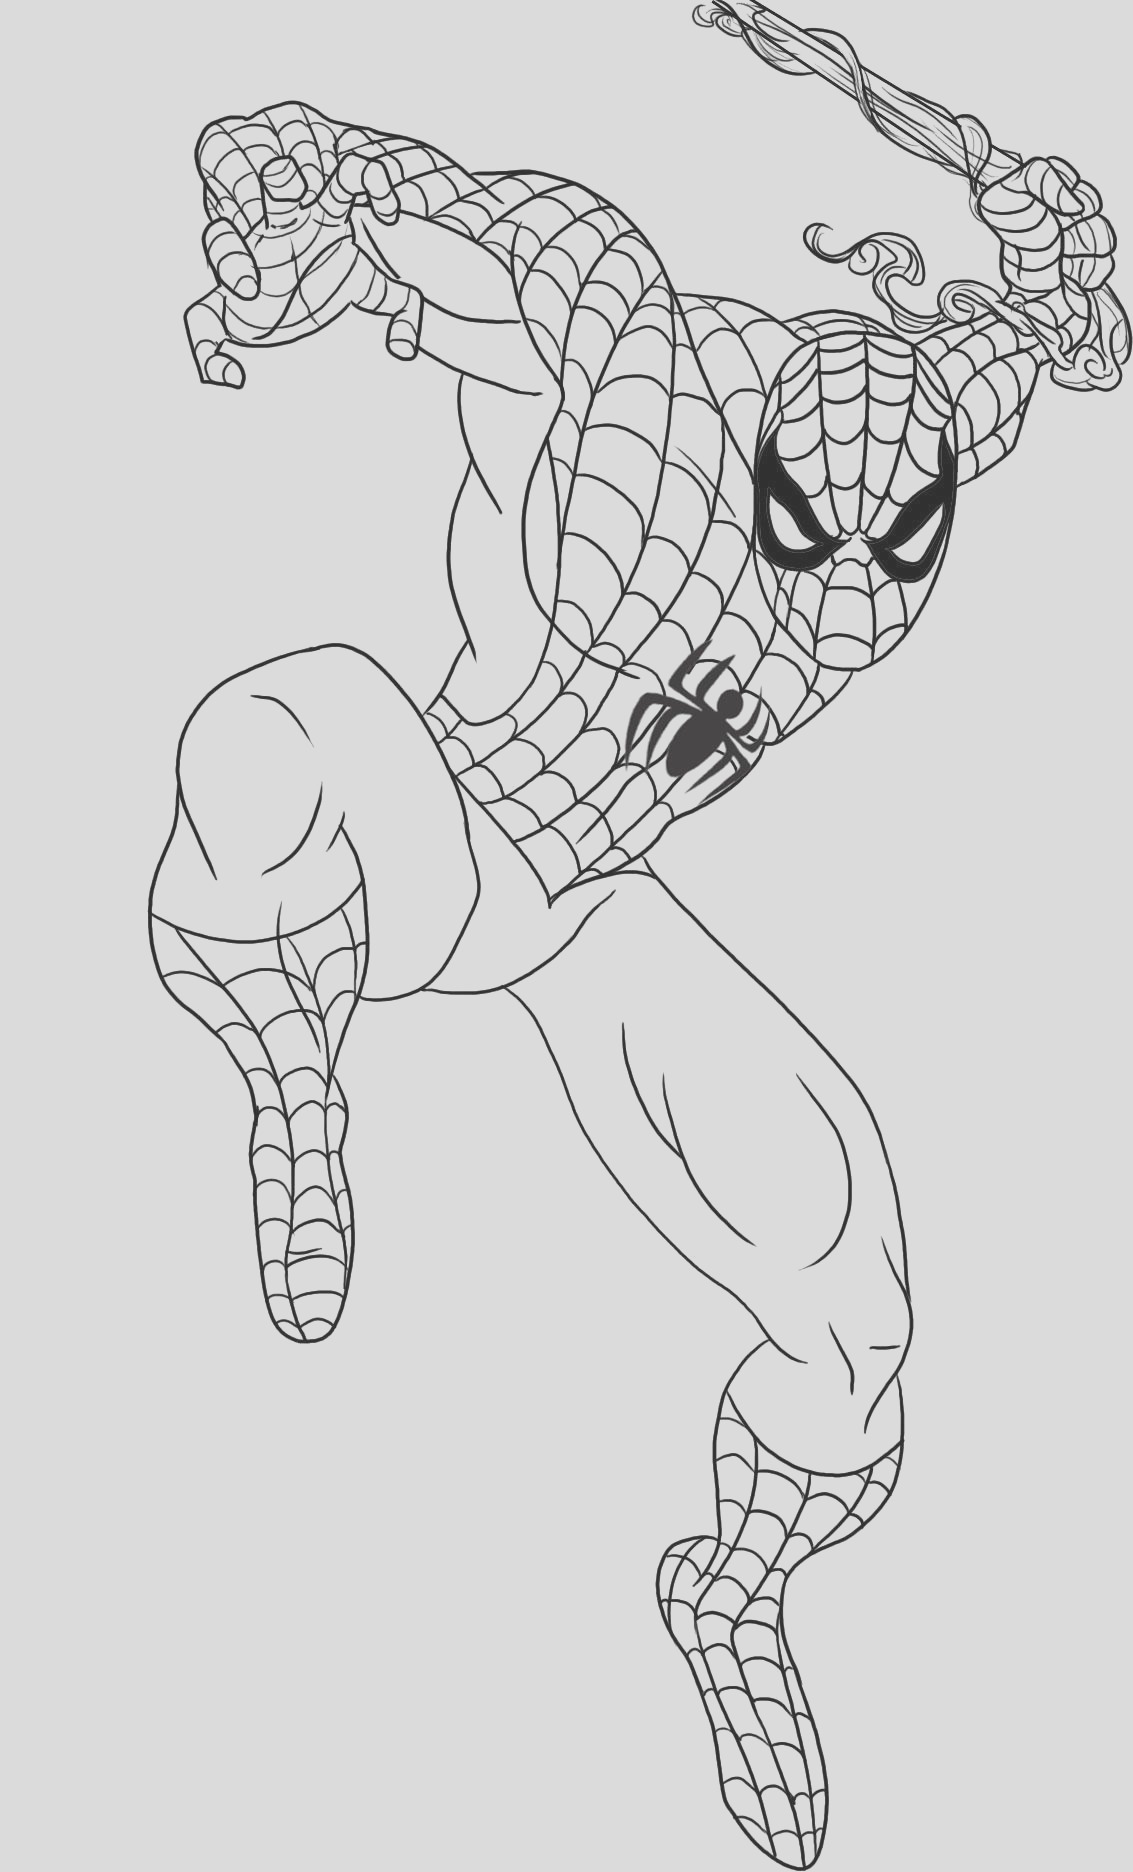 tv show flash coloring pages the flash coloring pages coloring4freecom flash show coloring tv pages 1 1